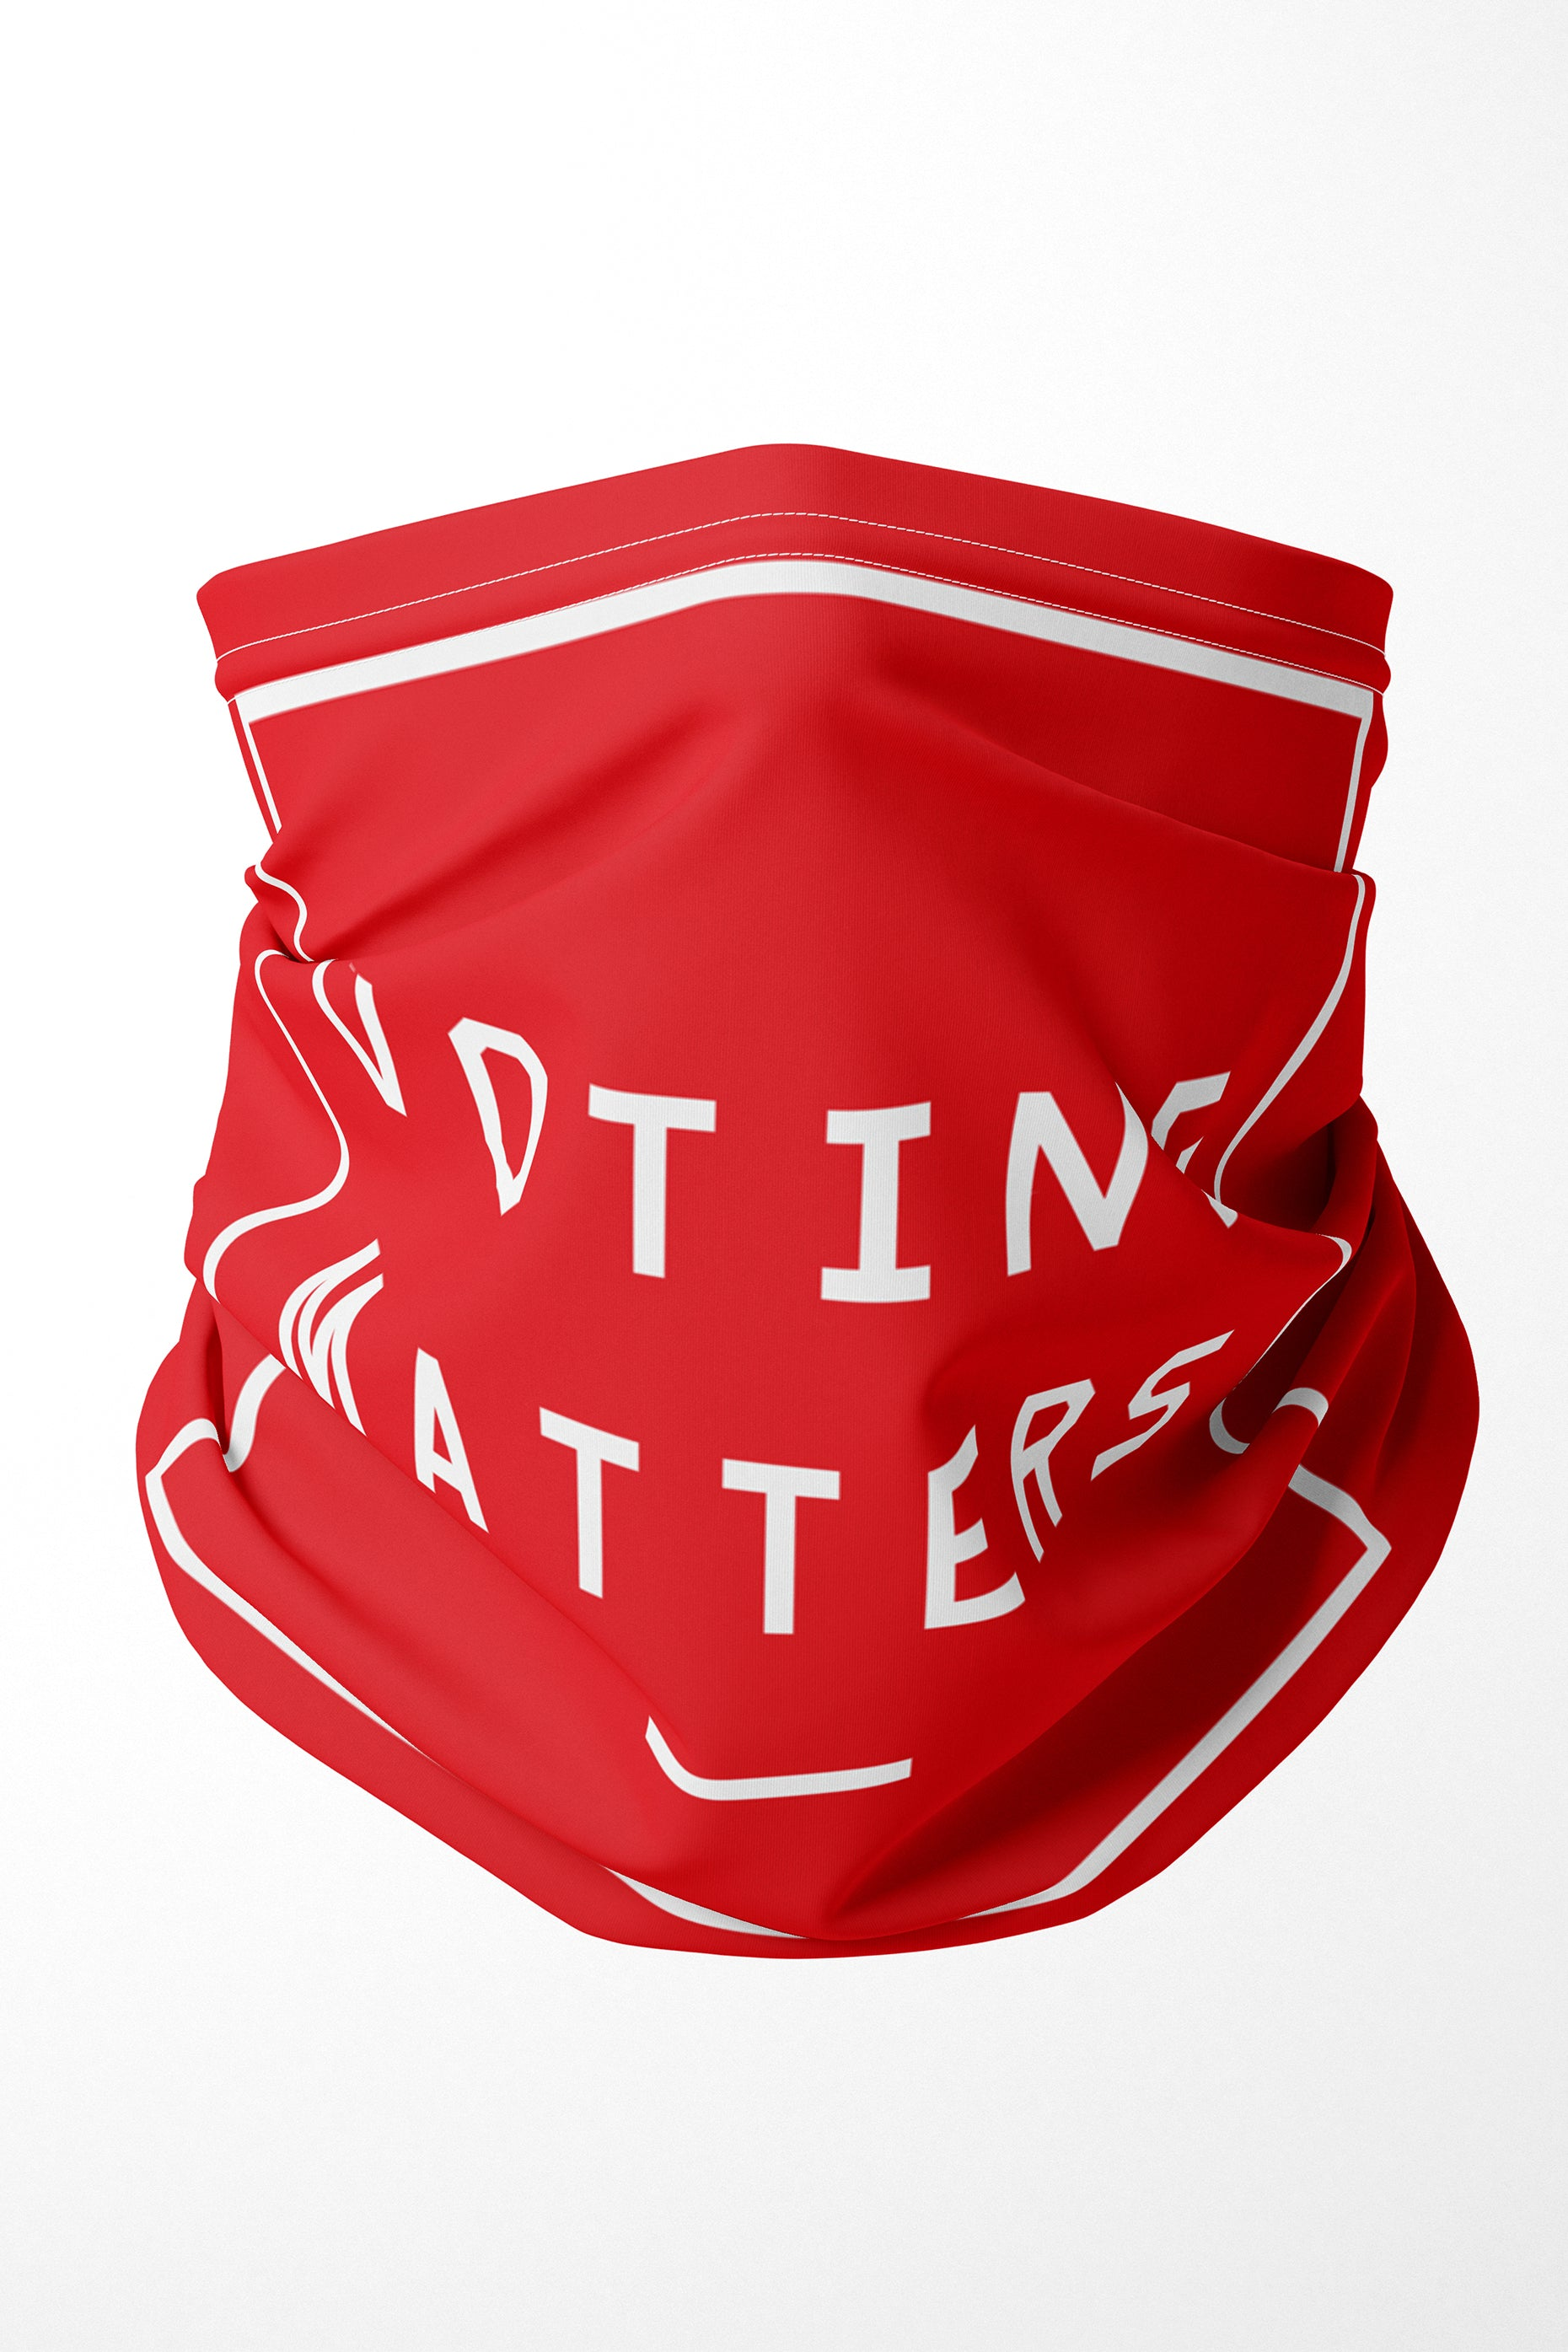 VOTING MATTERS PREMIUM ADULTS FACE MASK NECK GAITER